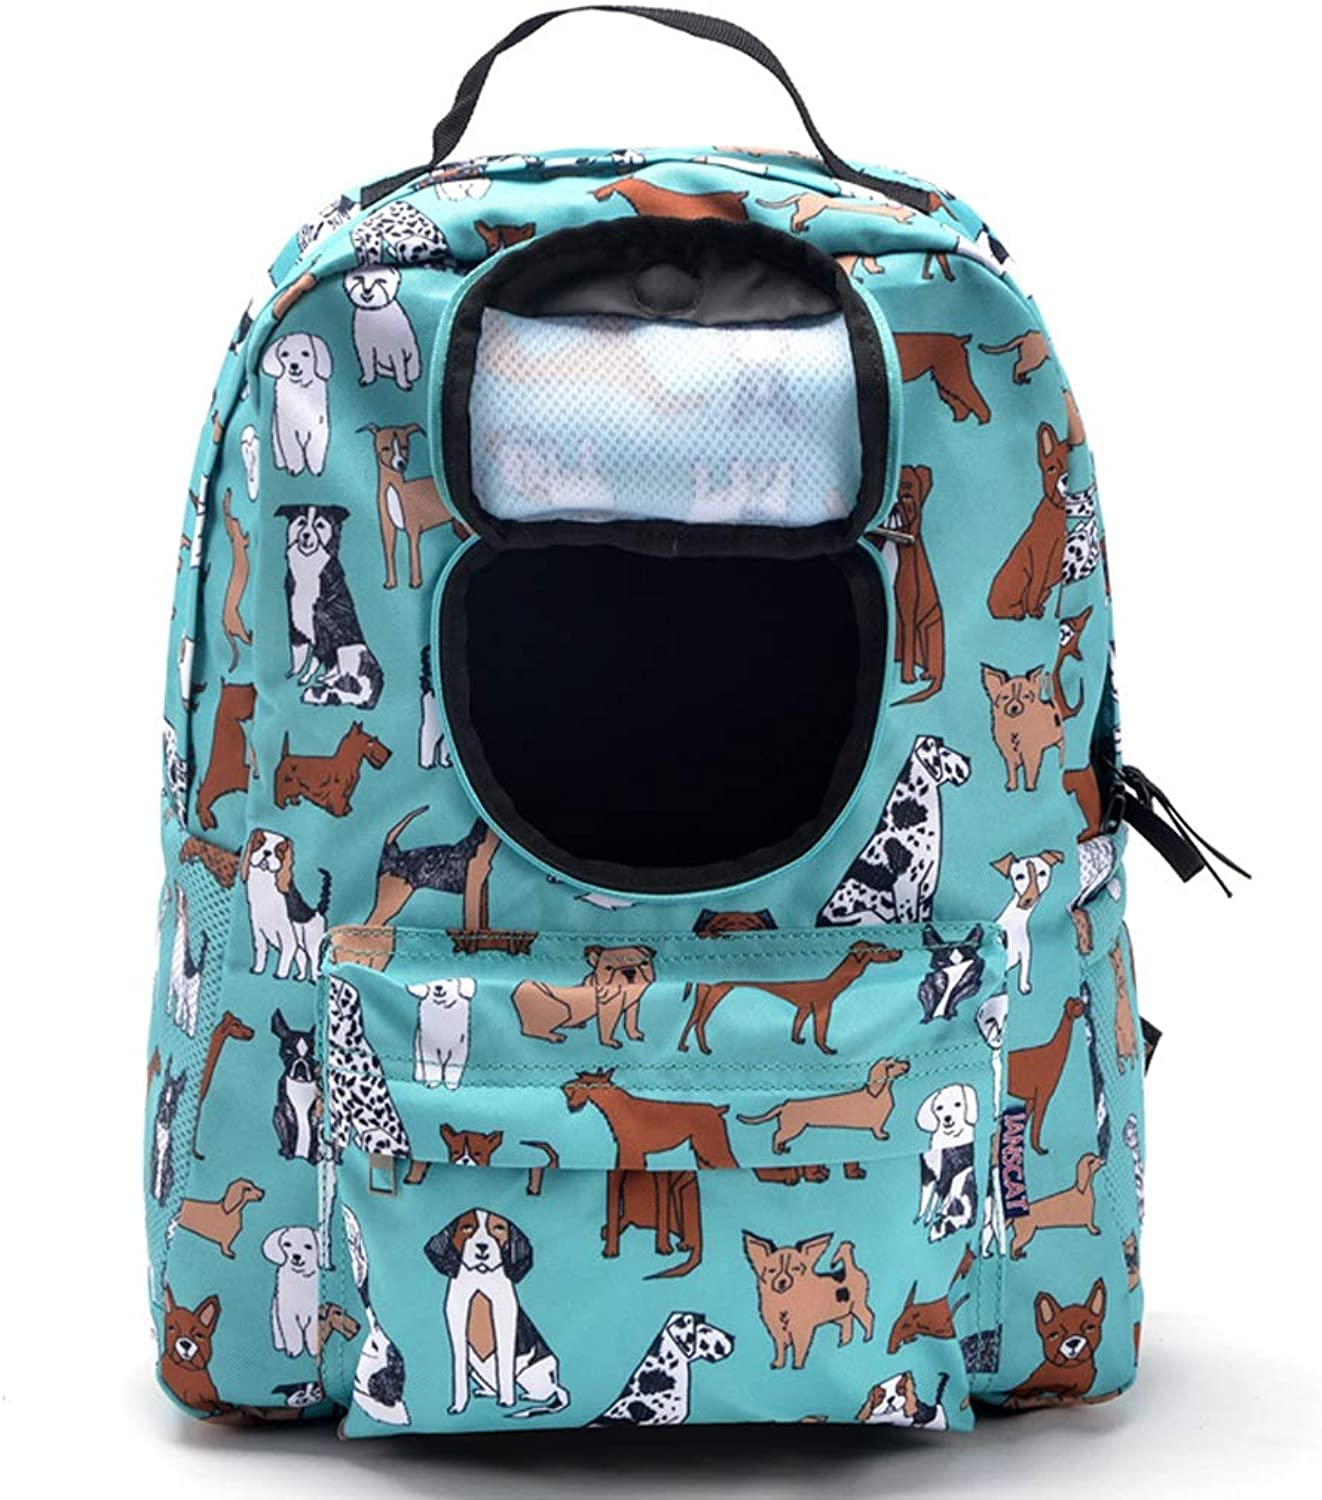 2019 Newly Designed Fashion Dog Carrier Backpack,Folding Pets Kitten Cat Carriers Bags for Medium Puppy and Cats Airline Approved for Hiking Travel (color   Green)